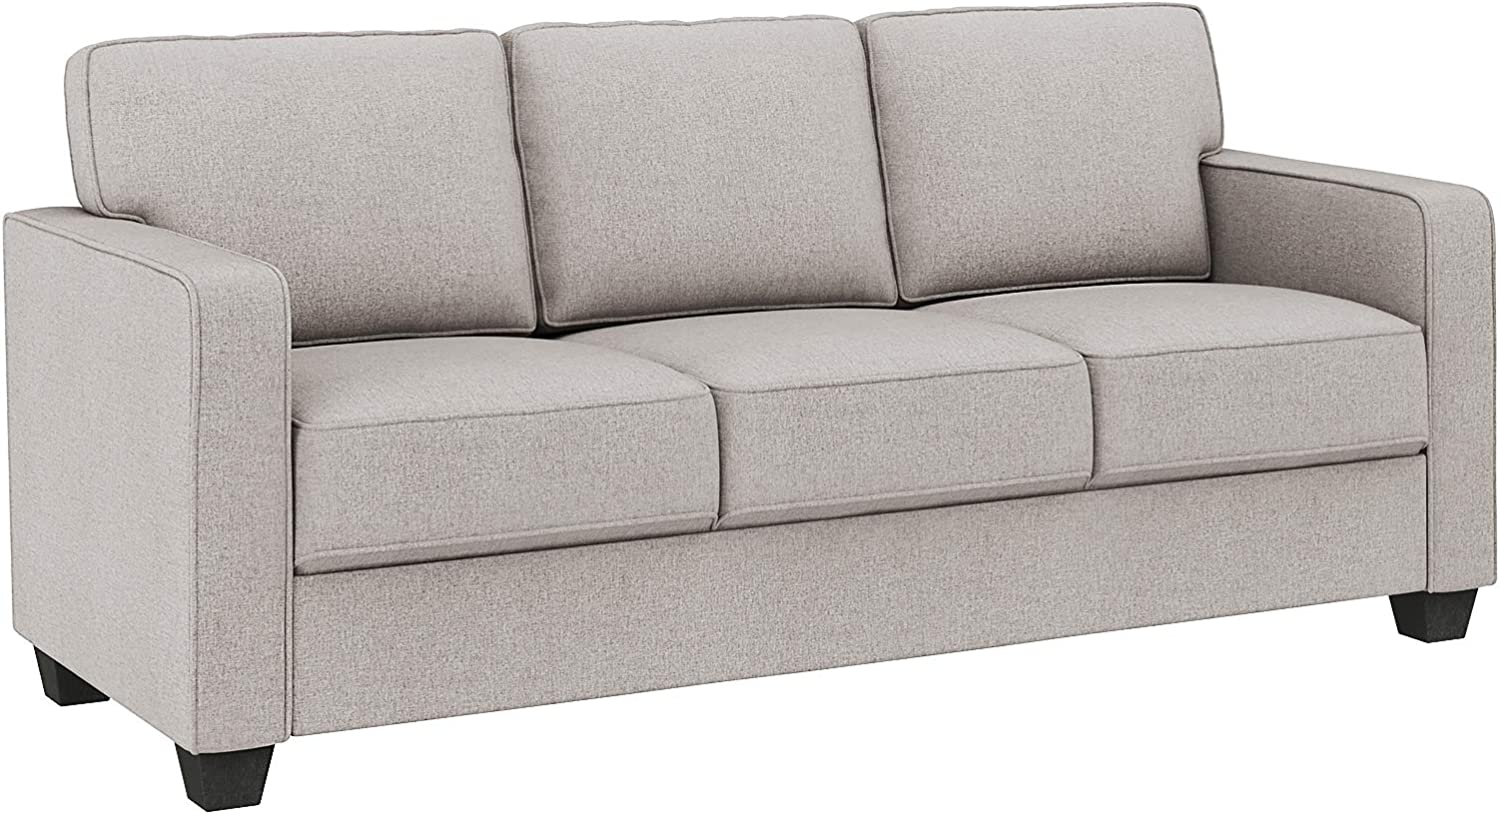 VASAGLE Sofa, Couch for Living Room Modern Upholstered, Cotton-Linen Surface, 78.7 x 32.3 x 35.4 Inches, Beige